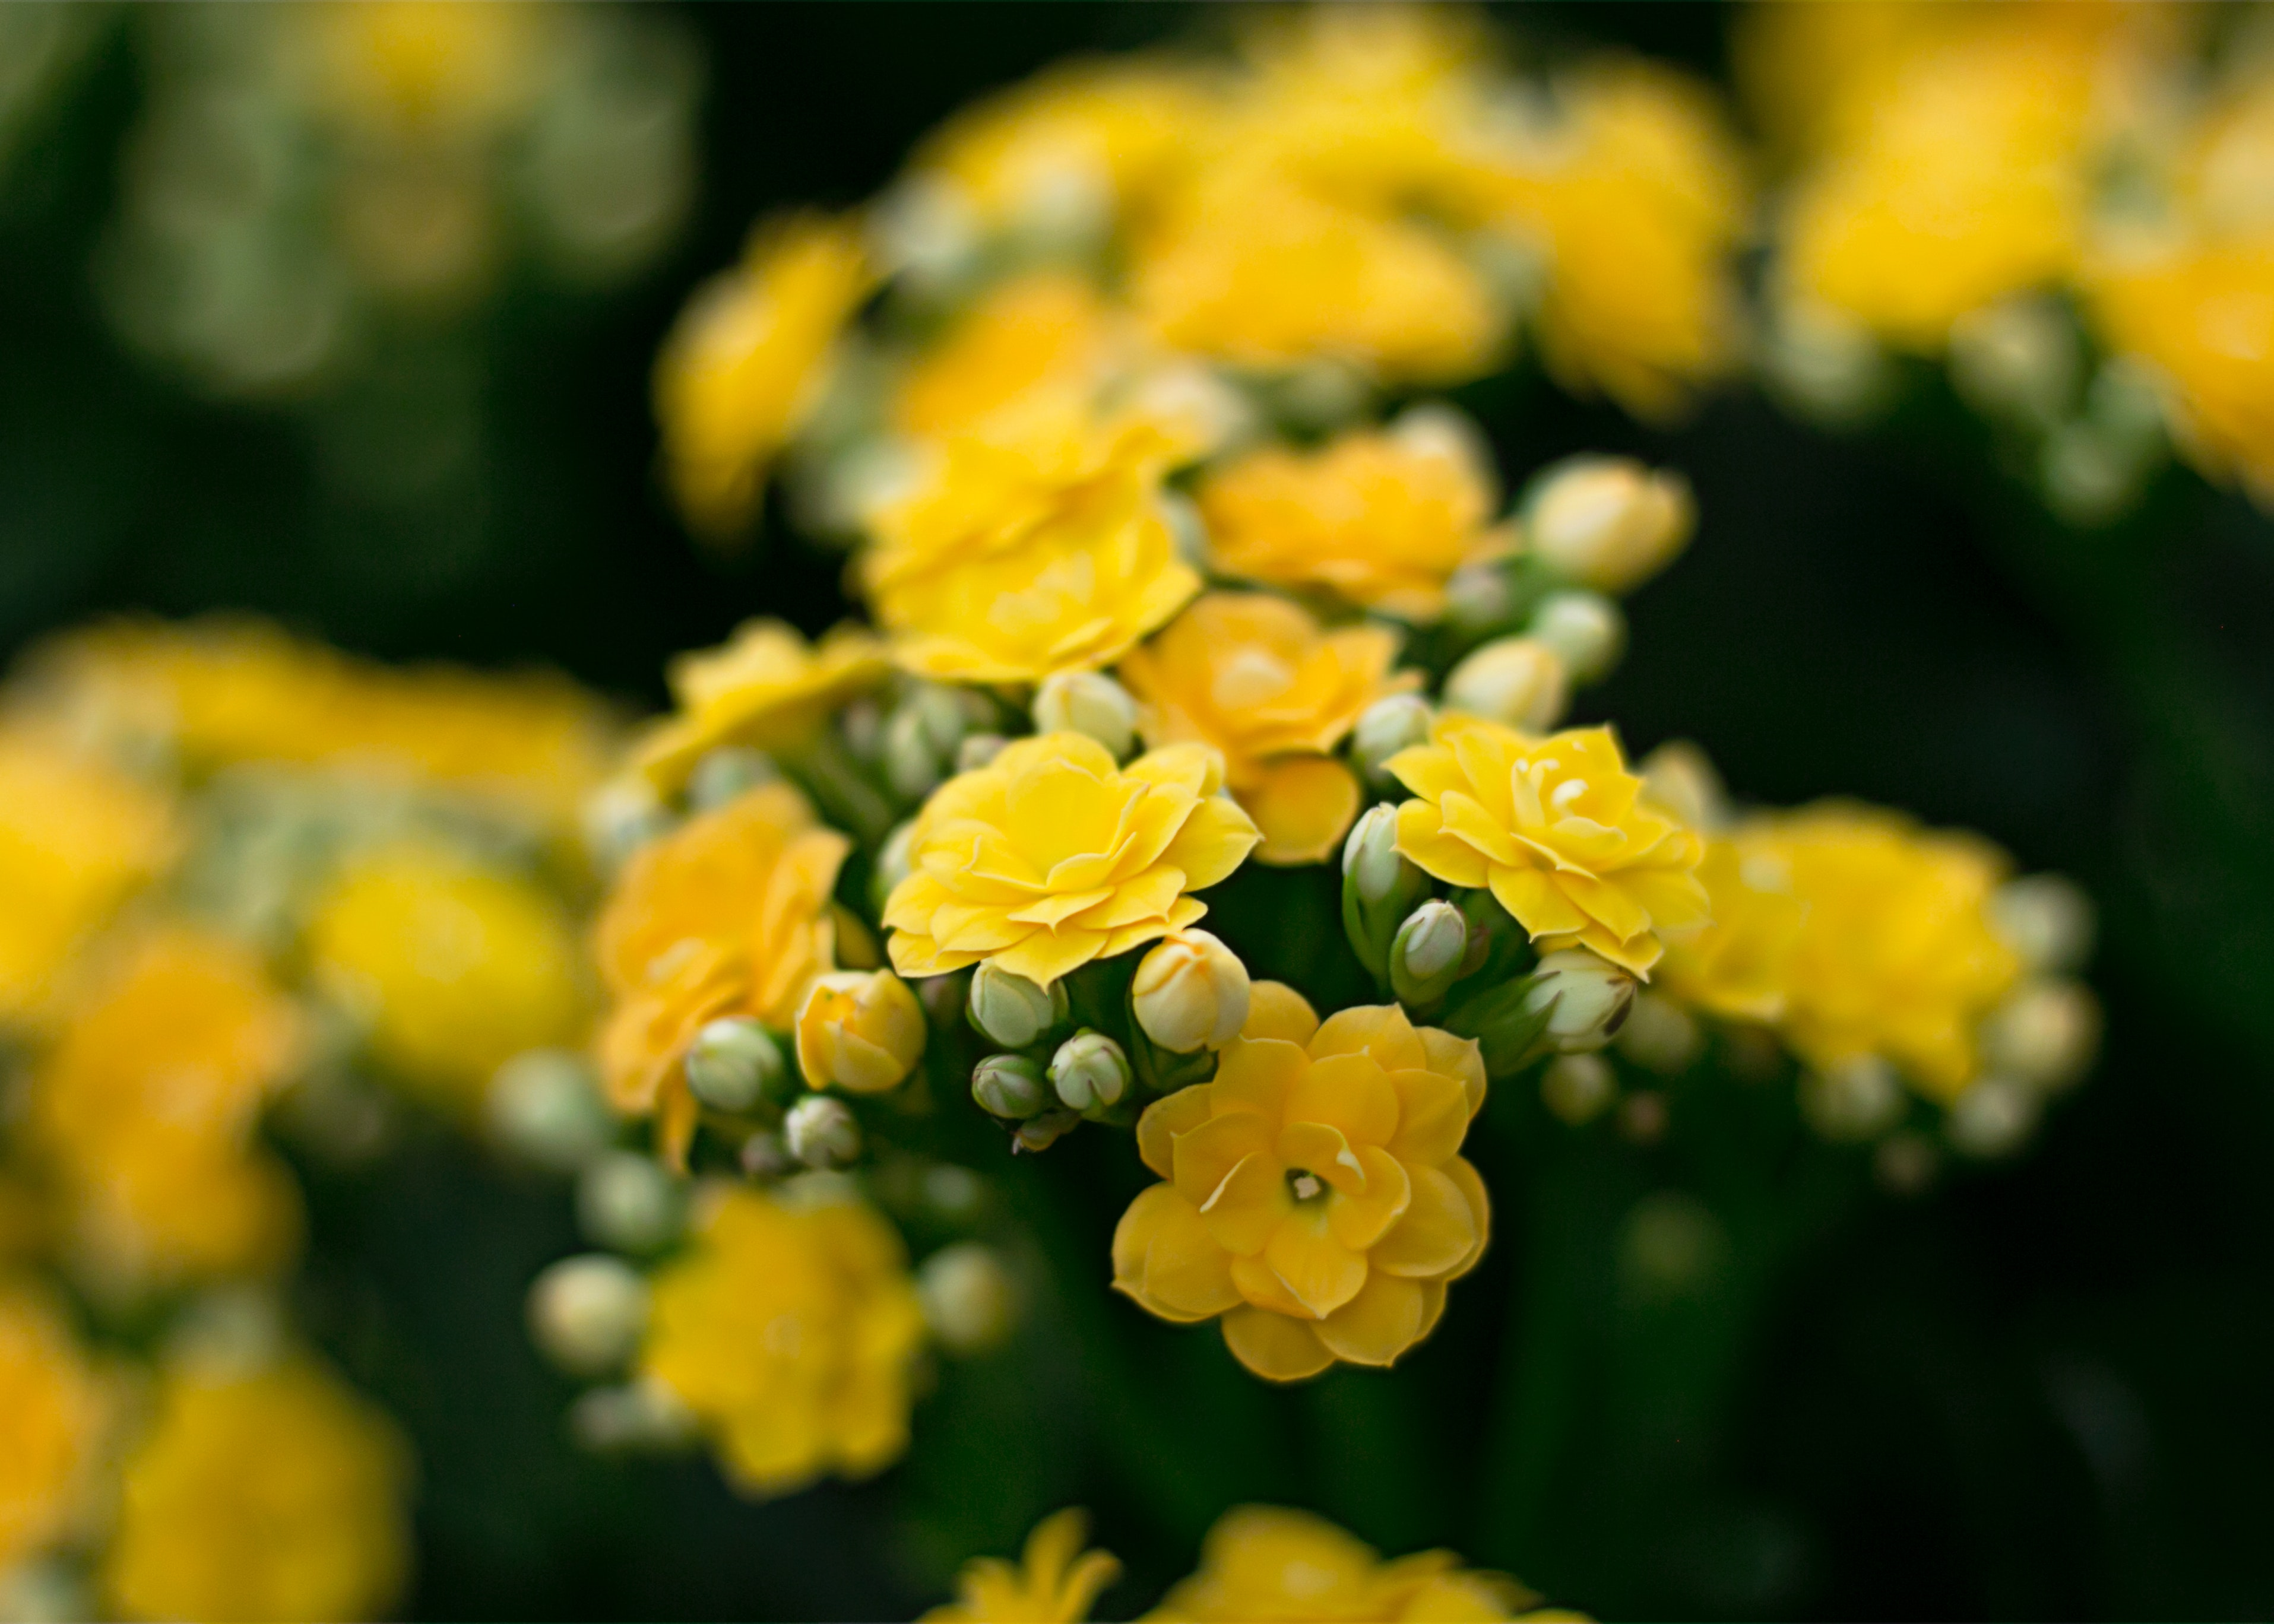 Close Upp Photography Of Yellow Flowers Free Stock Photo